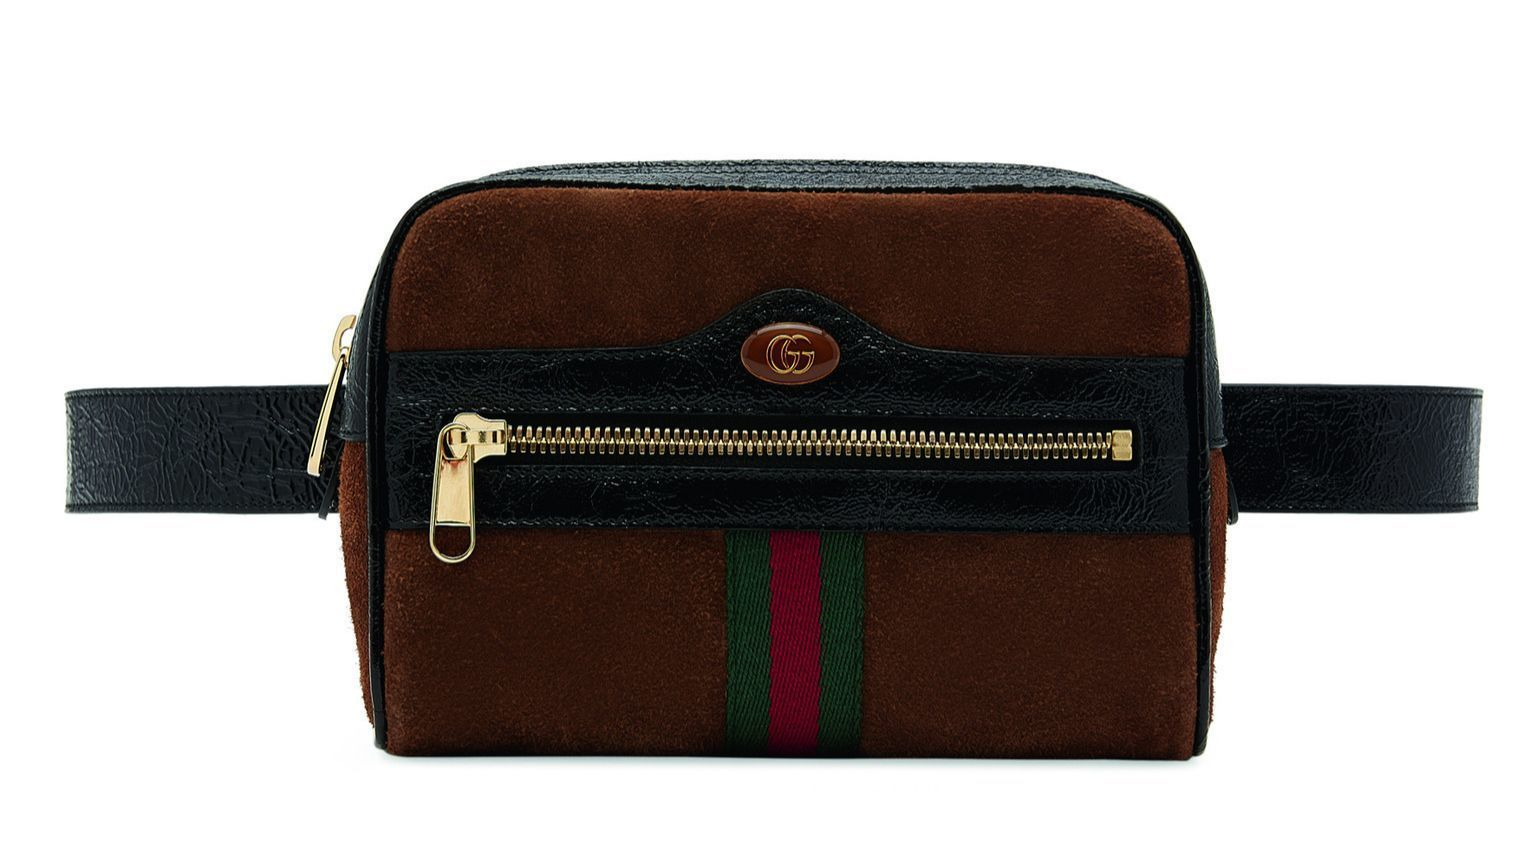 Gucci's Ophidia small belt bag.